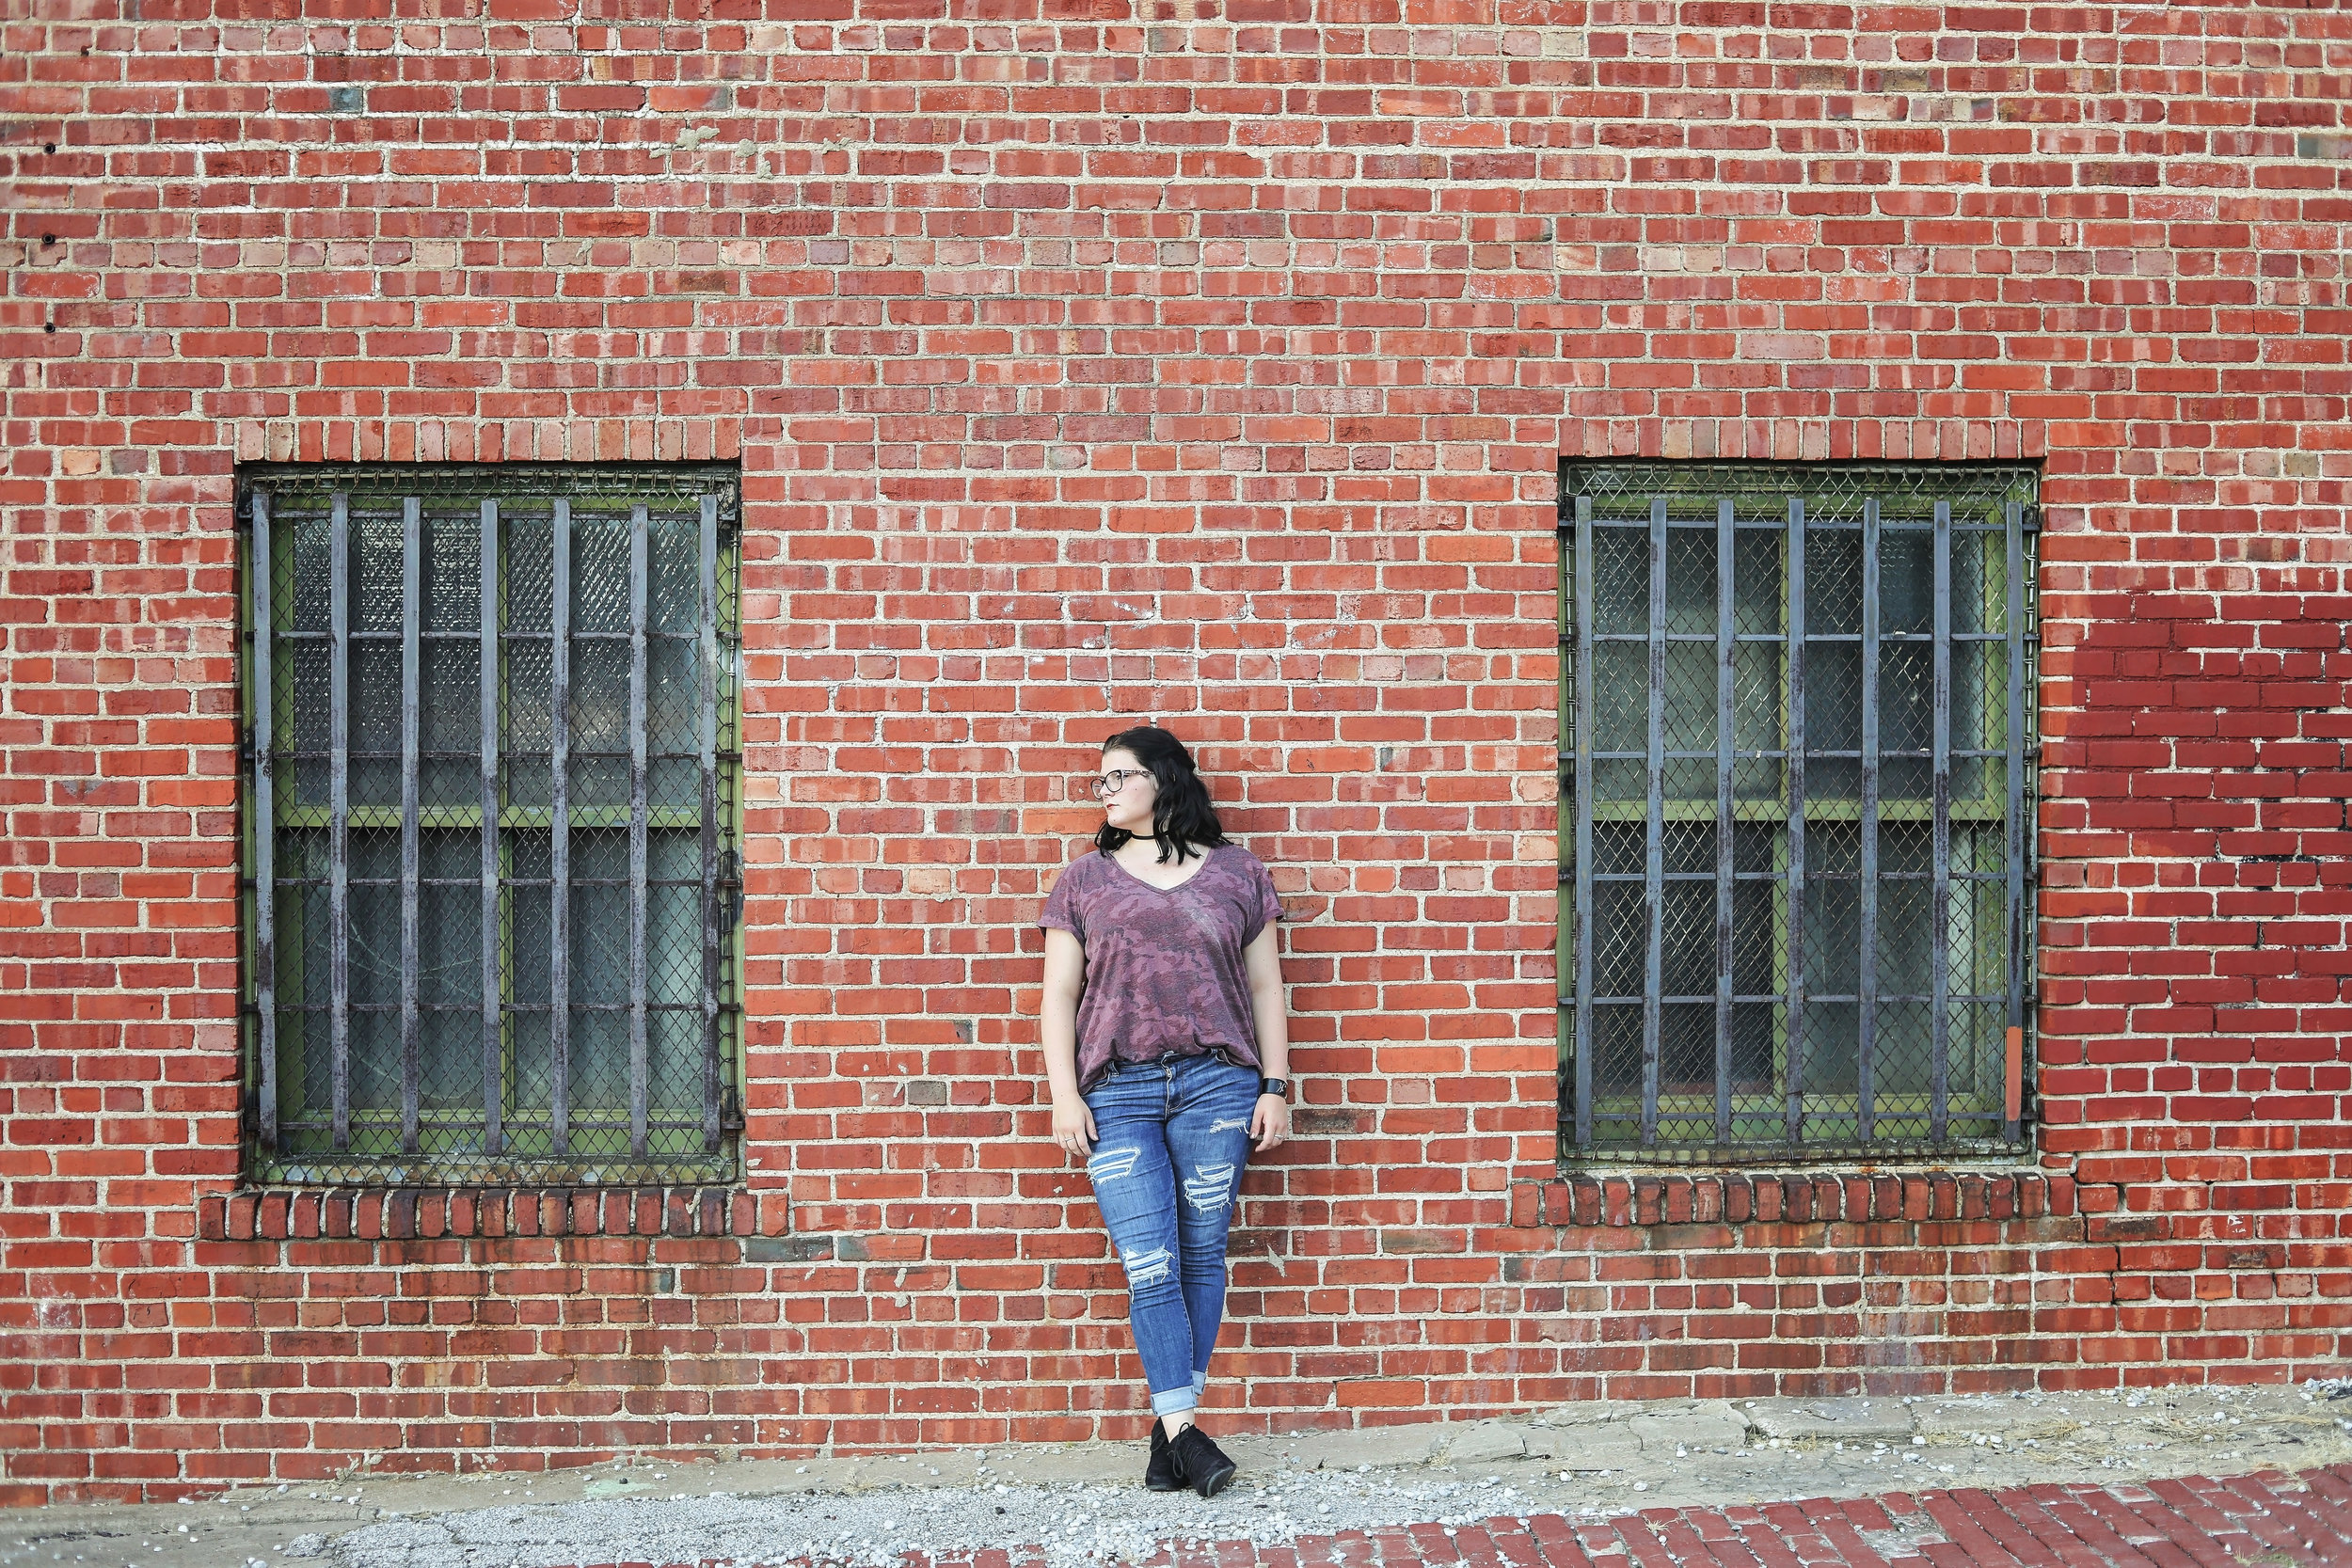 High school senior wearing jeans and black boots standing against a brick wall with windows on both sides of her in downtown Tulsa.